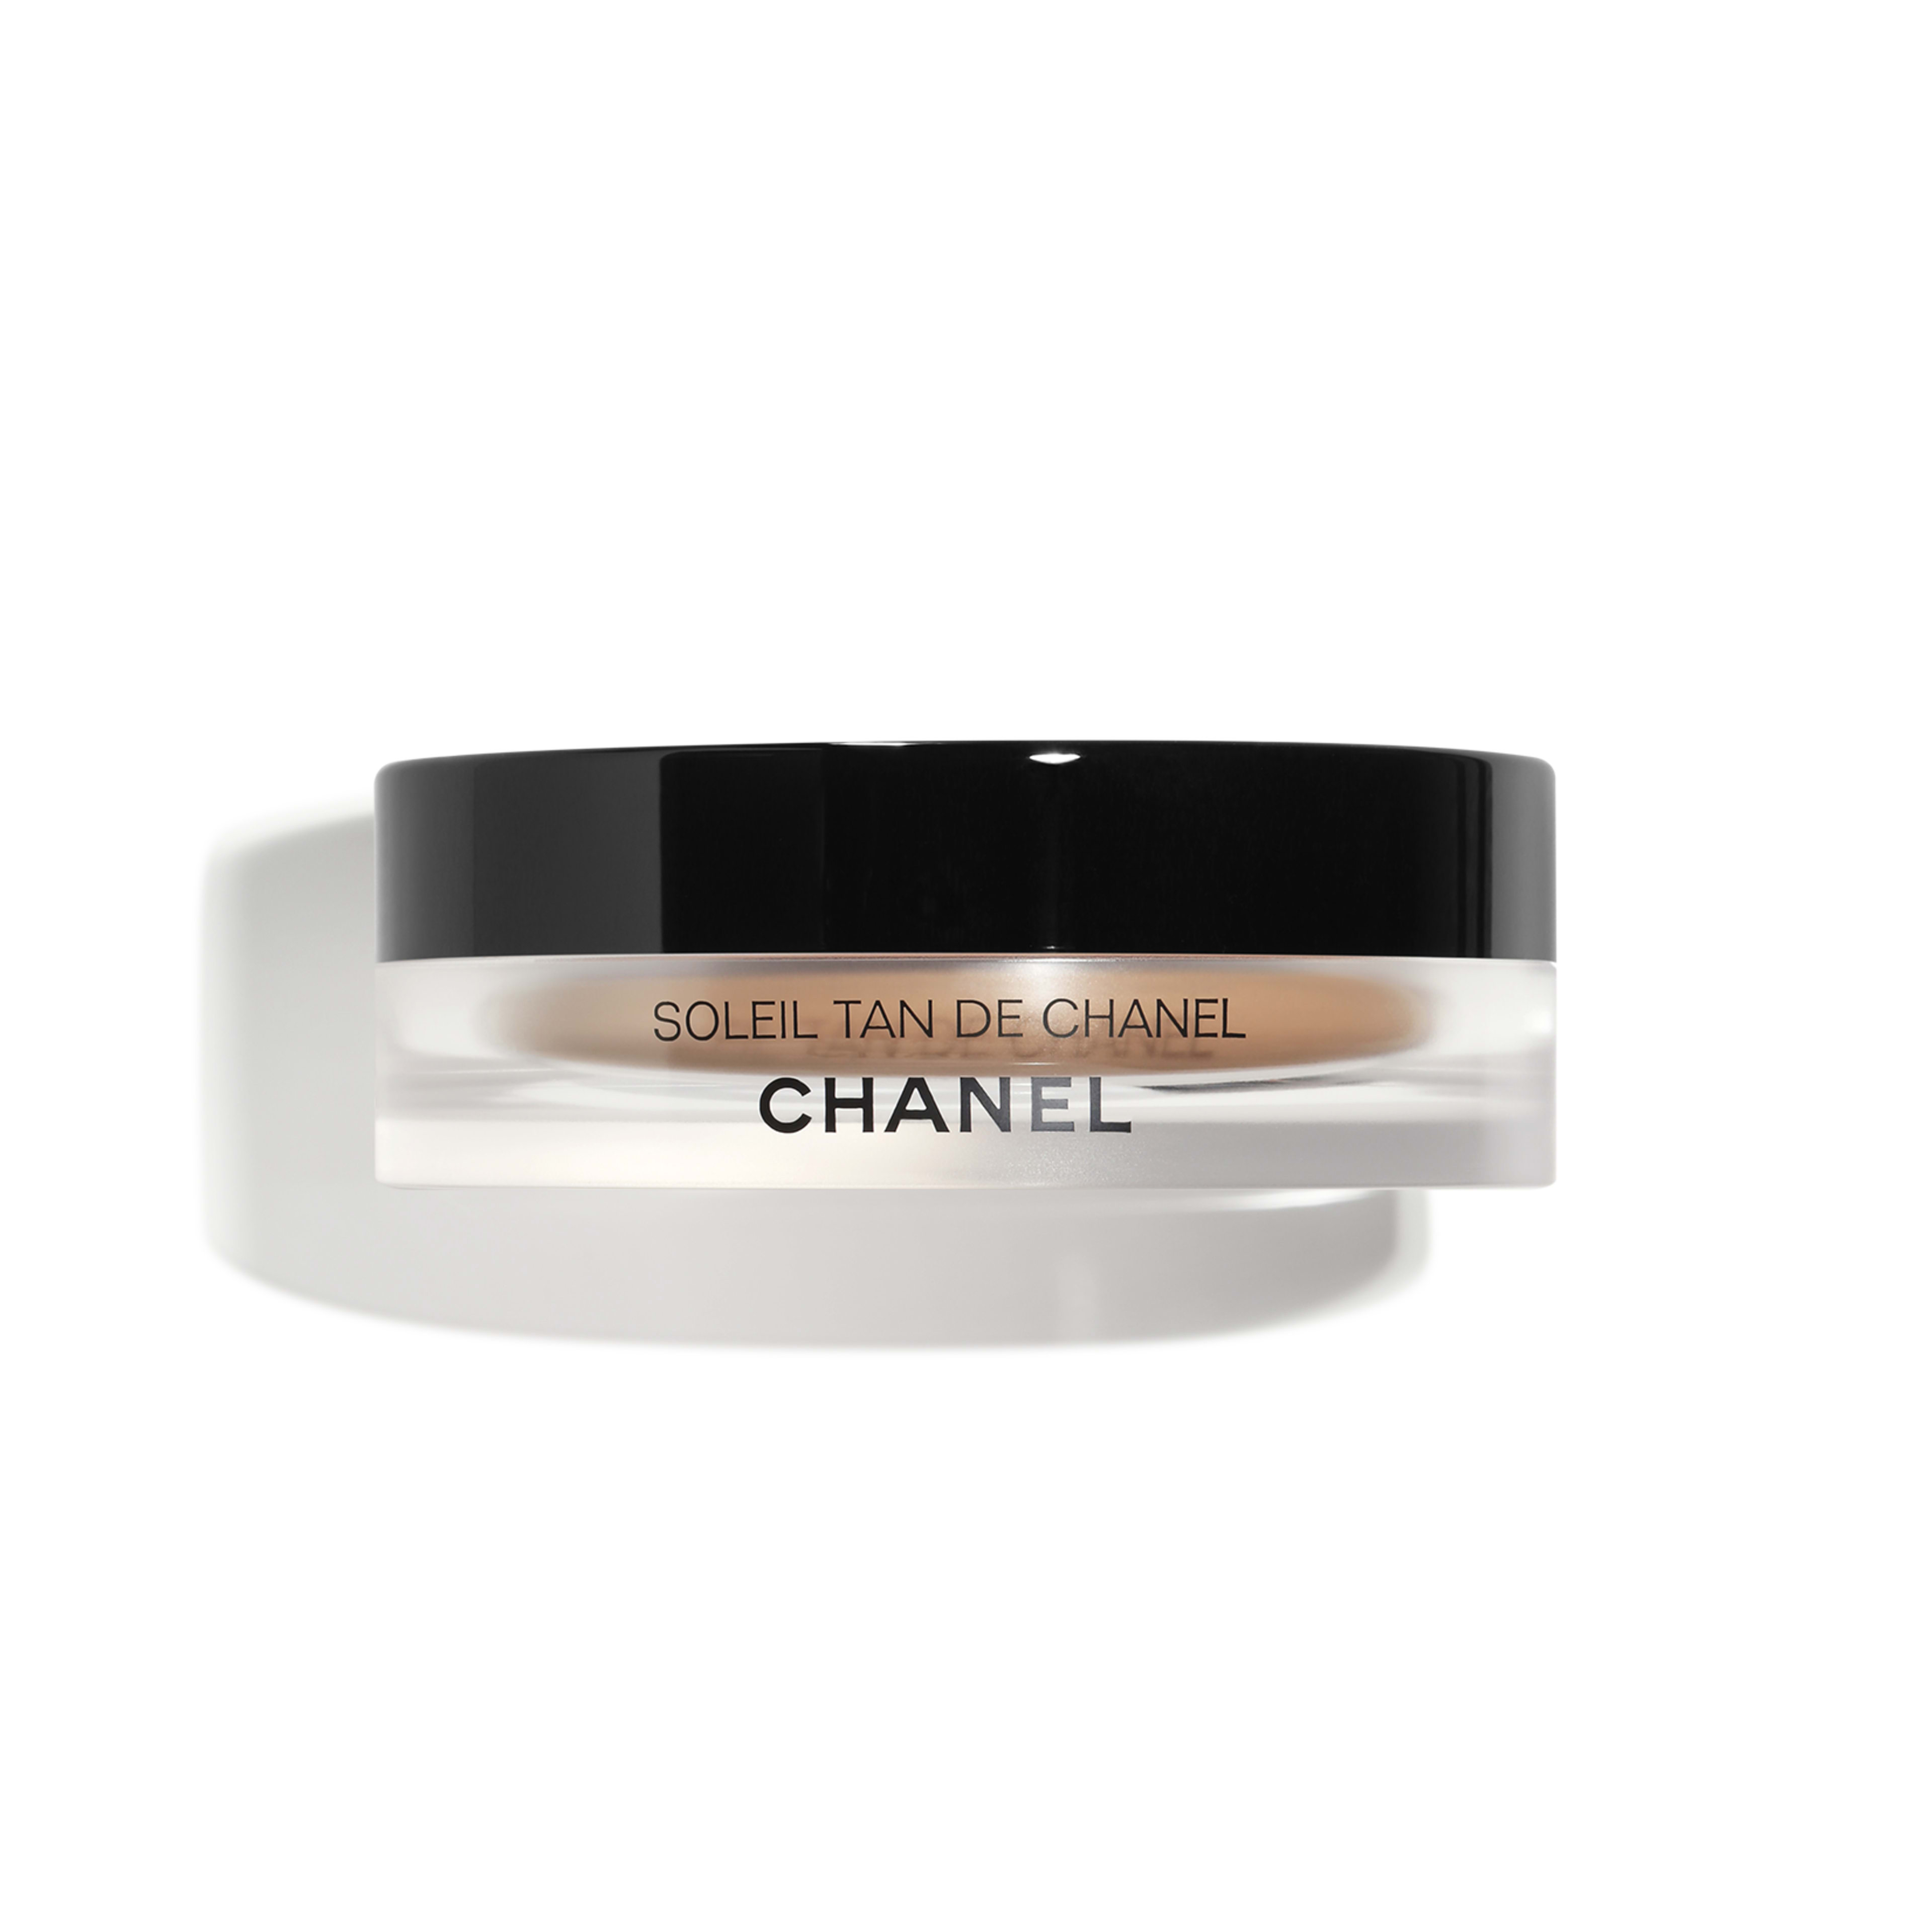 SOLEIL TAN DE CHANEL - makeup - 1OZ. - Default view